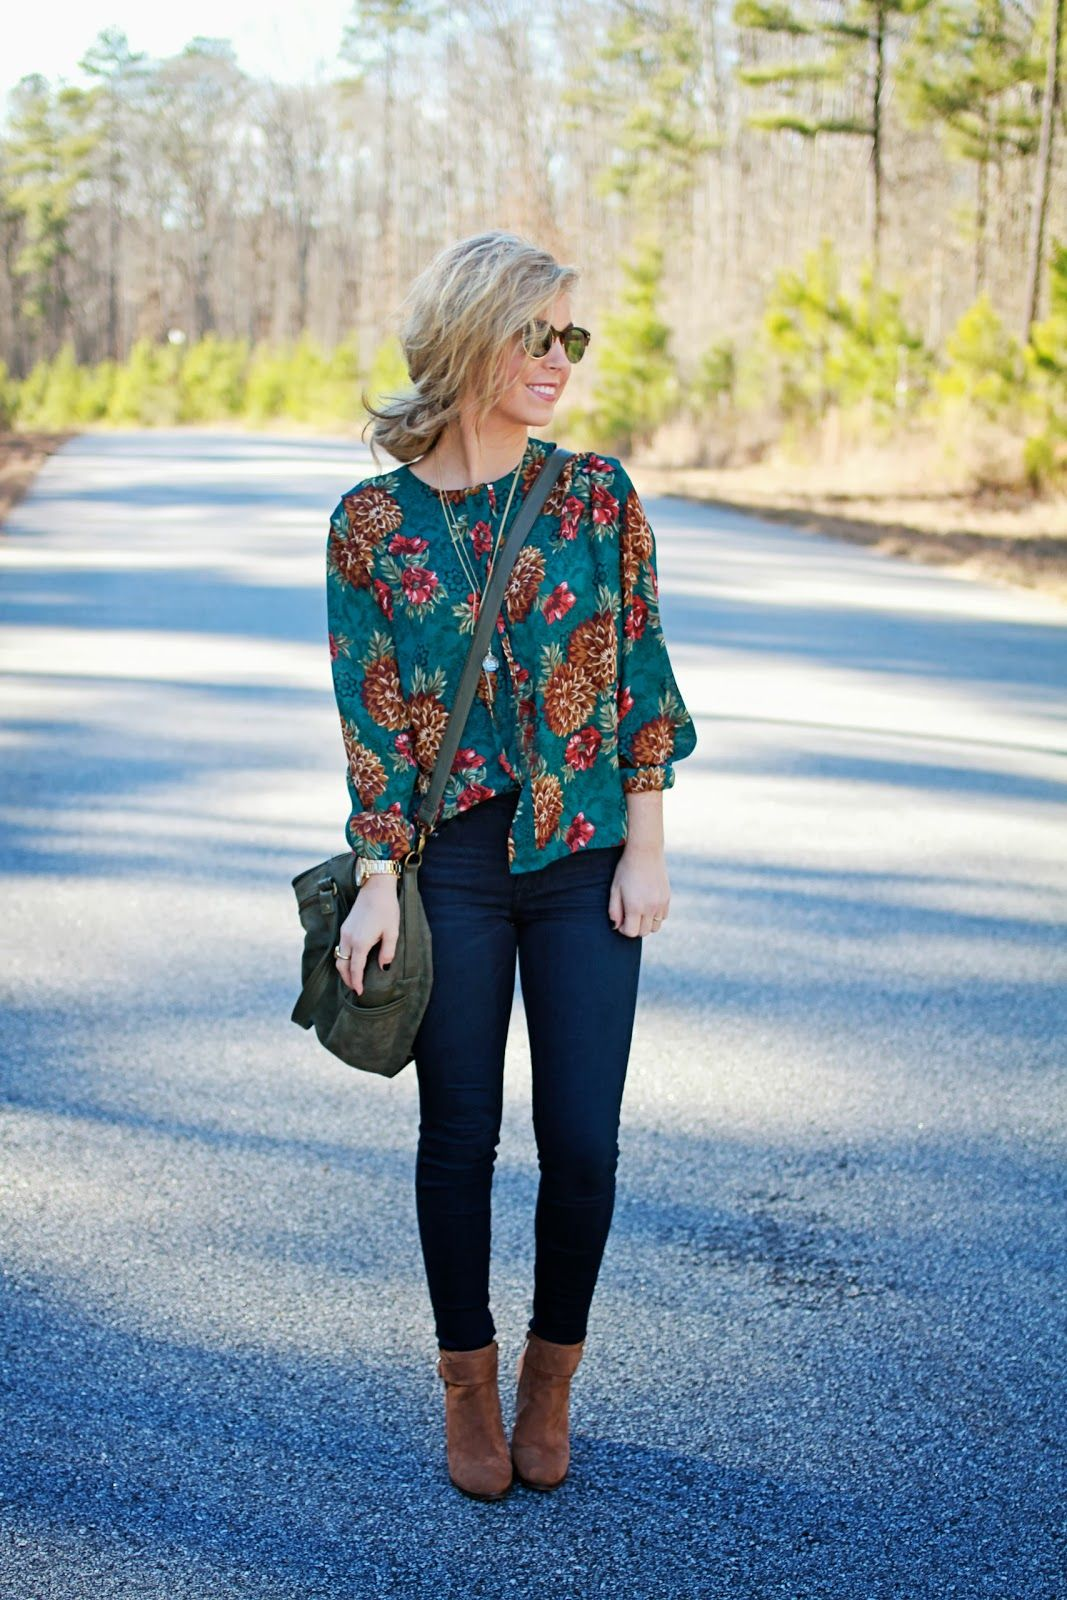 c7a6523d6 Blouses & Shirts Archives   Clothes i want   Fall fashion outfits ...